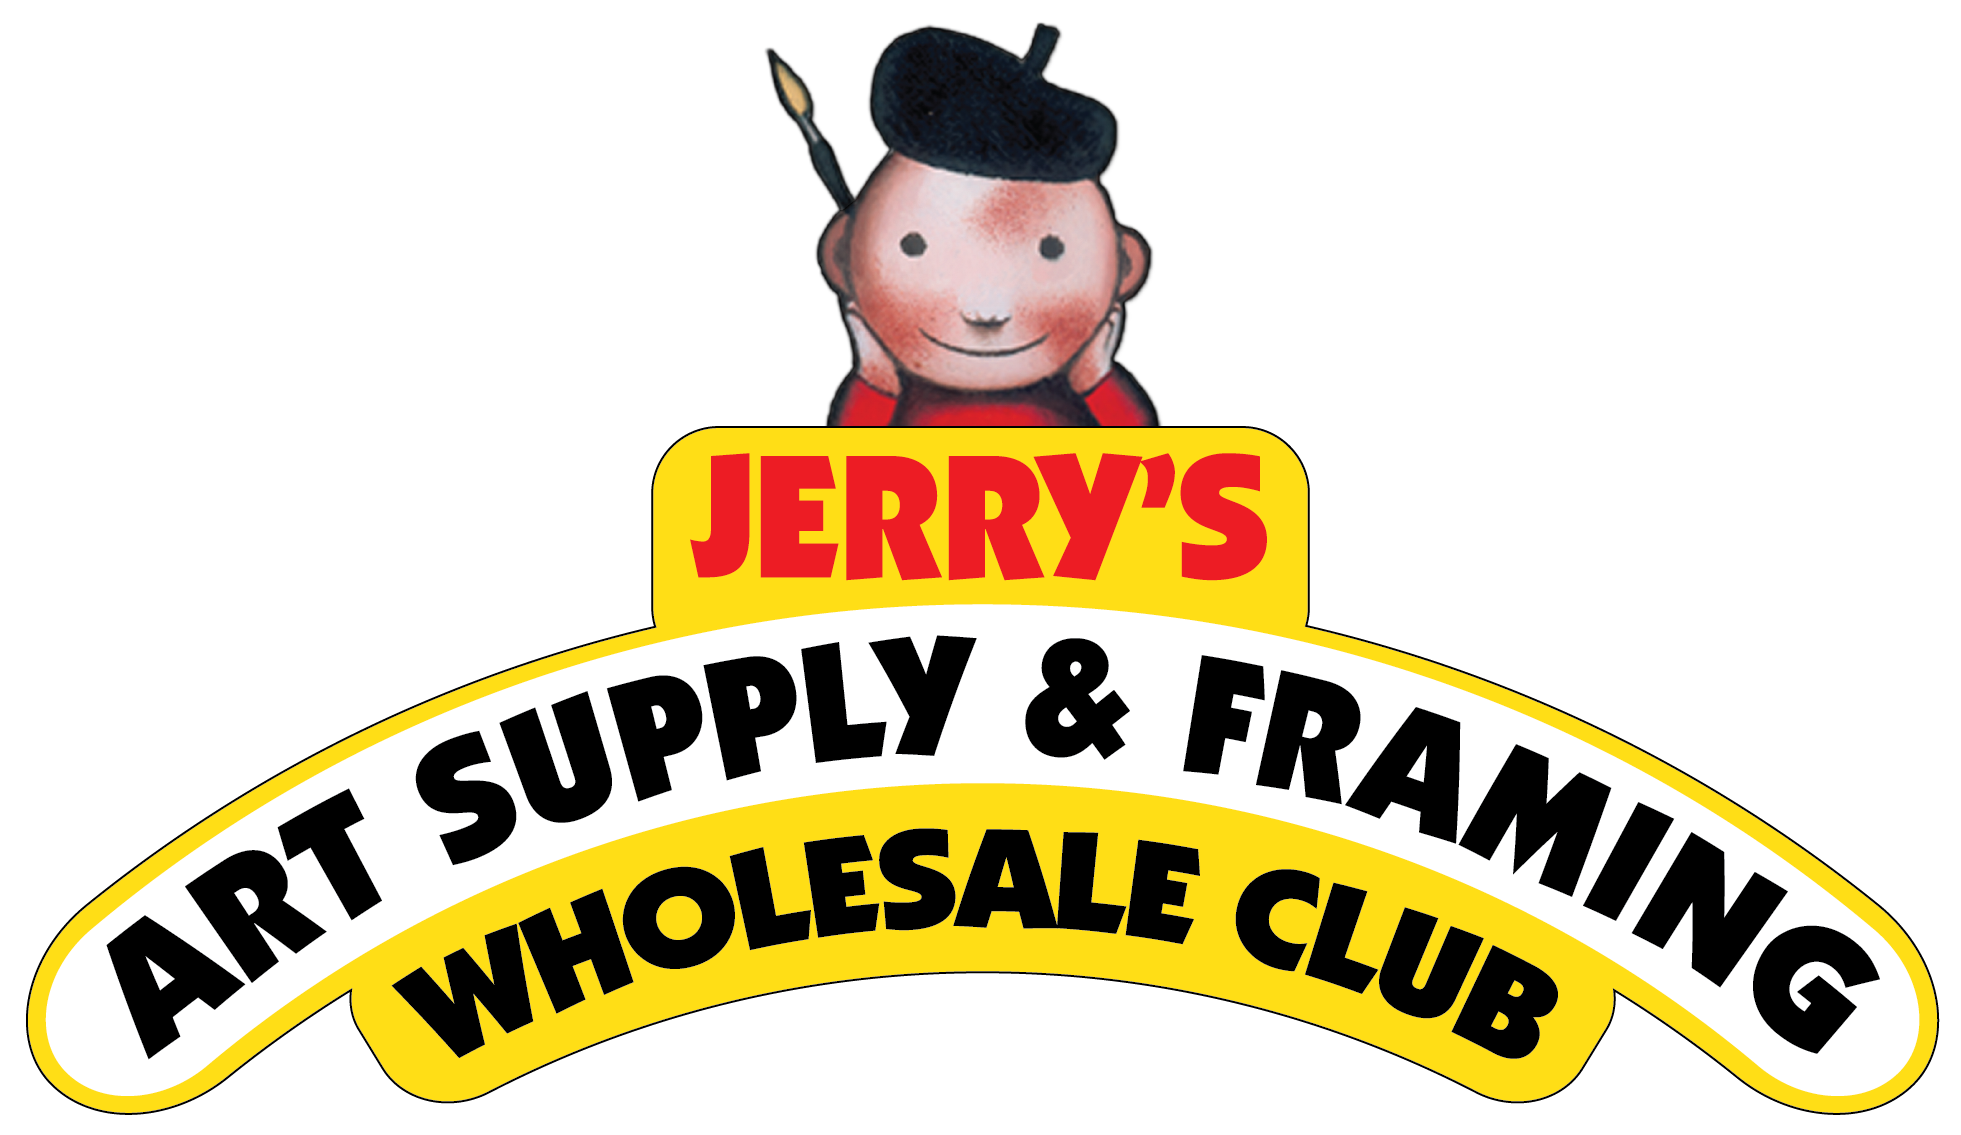 Jerry's Art Supply & Framing Wholesale Club – Miami